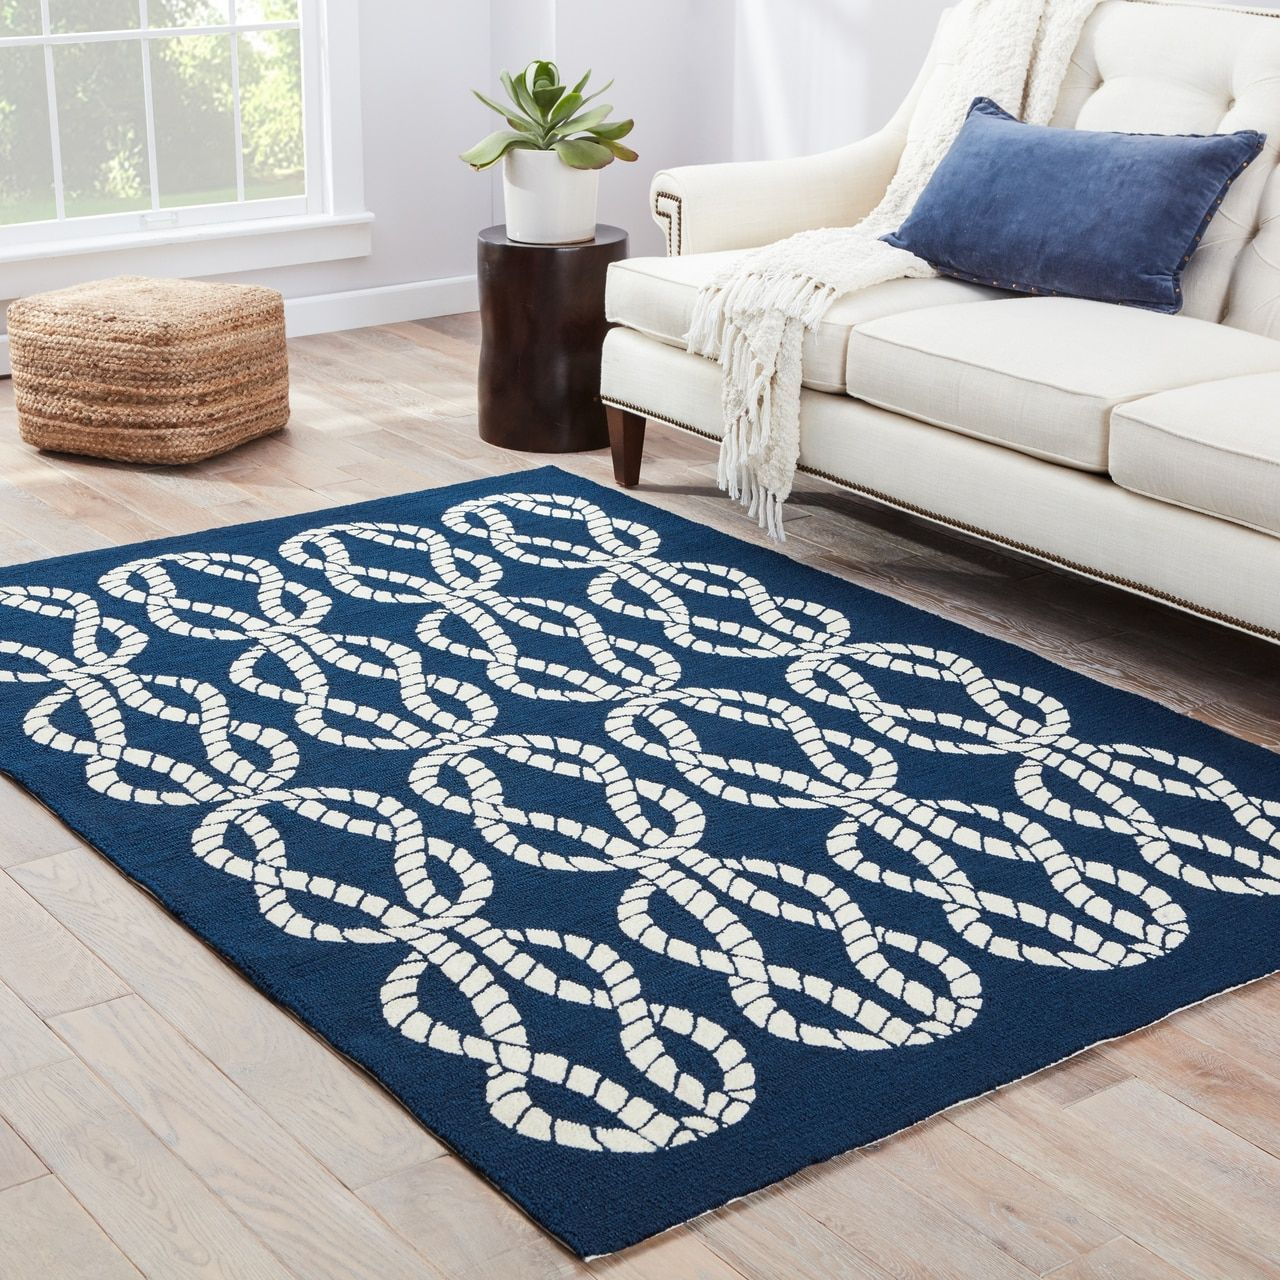 Large Scale White Knotted Rope Designs Adorn This Fun Nautical Inspired Maritime Knots Navy Blue Indoor Outdoor Area Rug Giving It A Pop Of Bright Color To